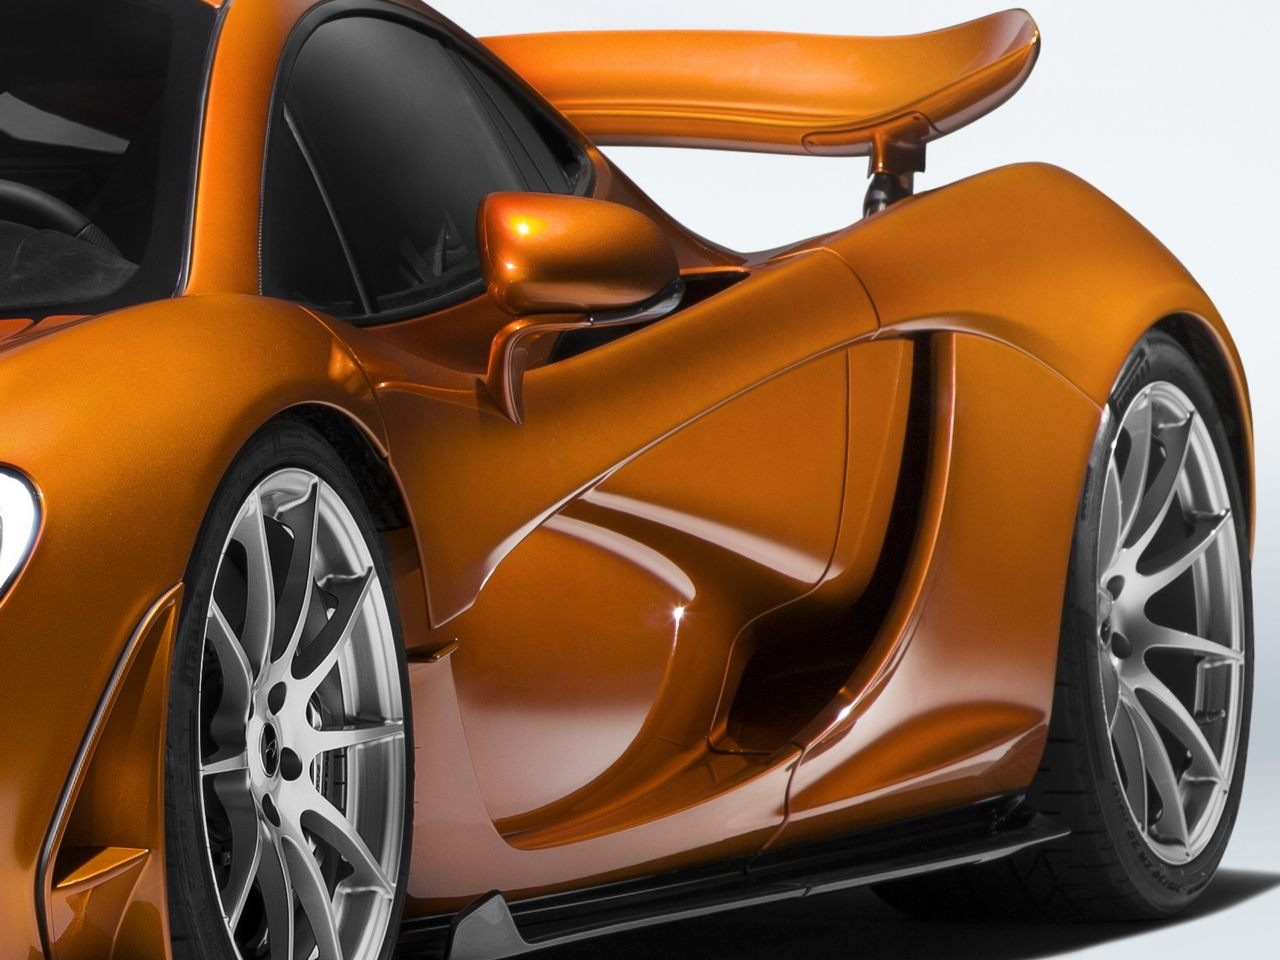 mclaren-f1-first-last-produced-end-production_0-100_7